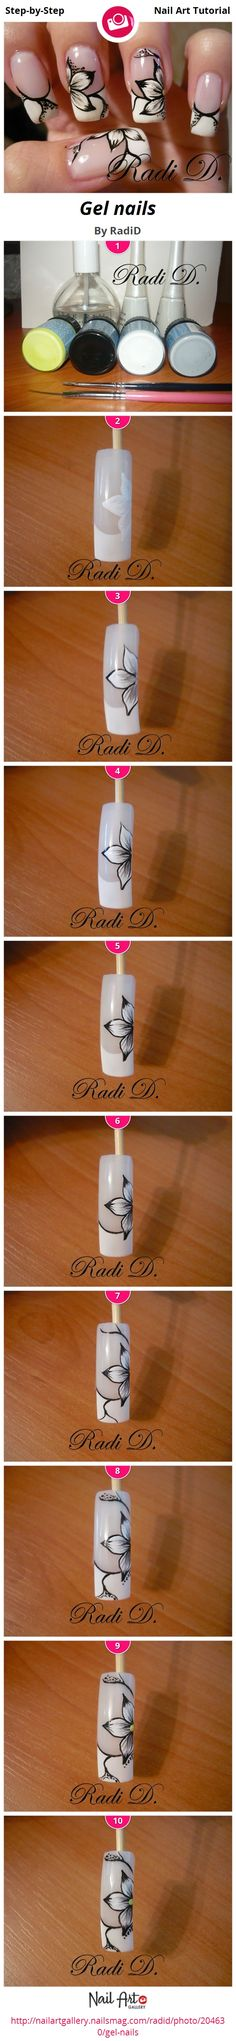 DIY Ideas Nails Art : Gel nails by RadiD Nail Art Gallery Step-by-Step Tutorials nailartgallery. Floral Nail Art, Nail Art Diy, Diy Nails, Fancy Nails, Trendy Nails, Nagel Hacks, Flower Nails, Nail Art Galleries, Creative Nails